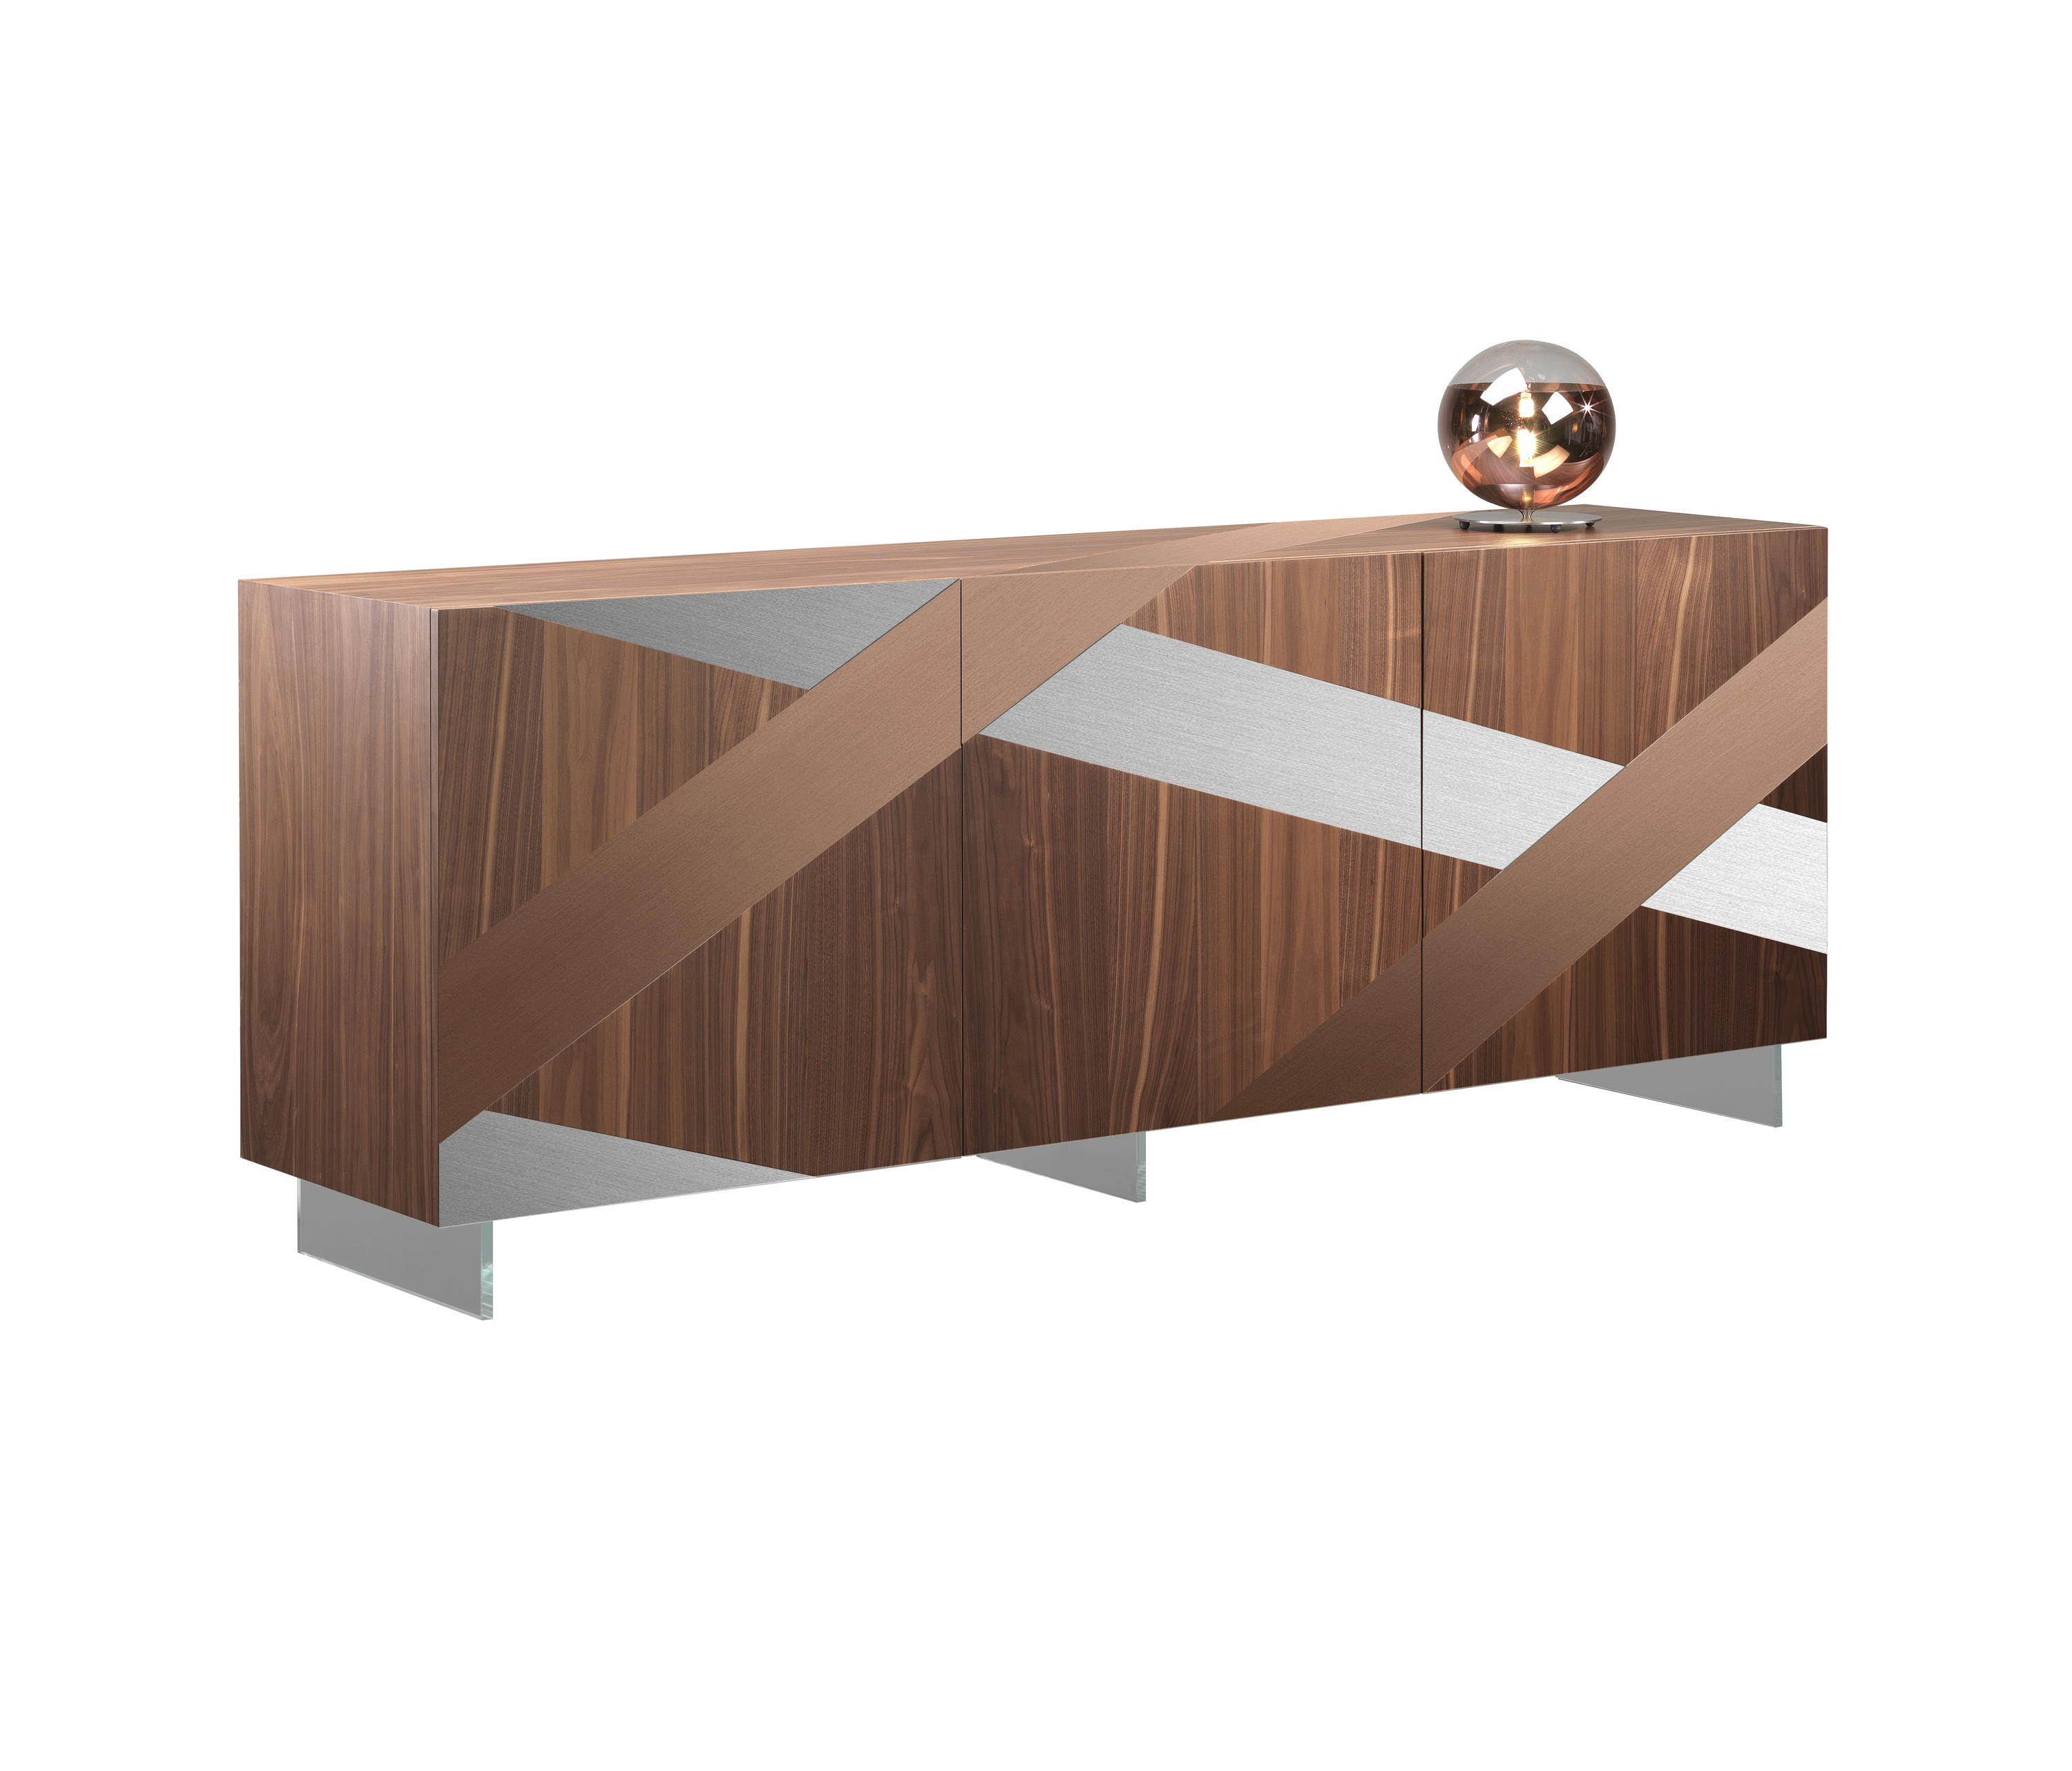 Ramo Buffet – Sideboards / Kommoden Von Reflex | Architonic Throughout Copper Leaf Wood Credenzas (Gallery 10 of 30)